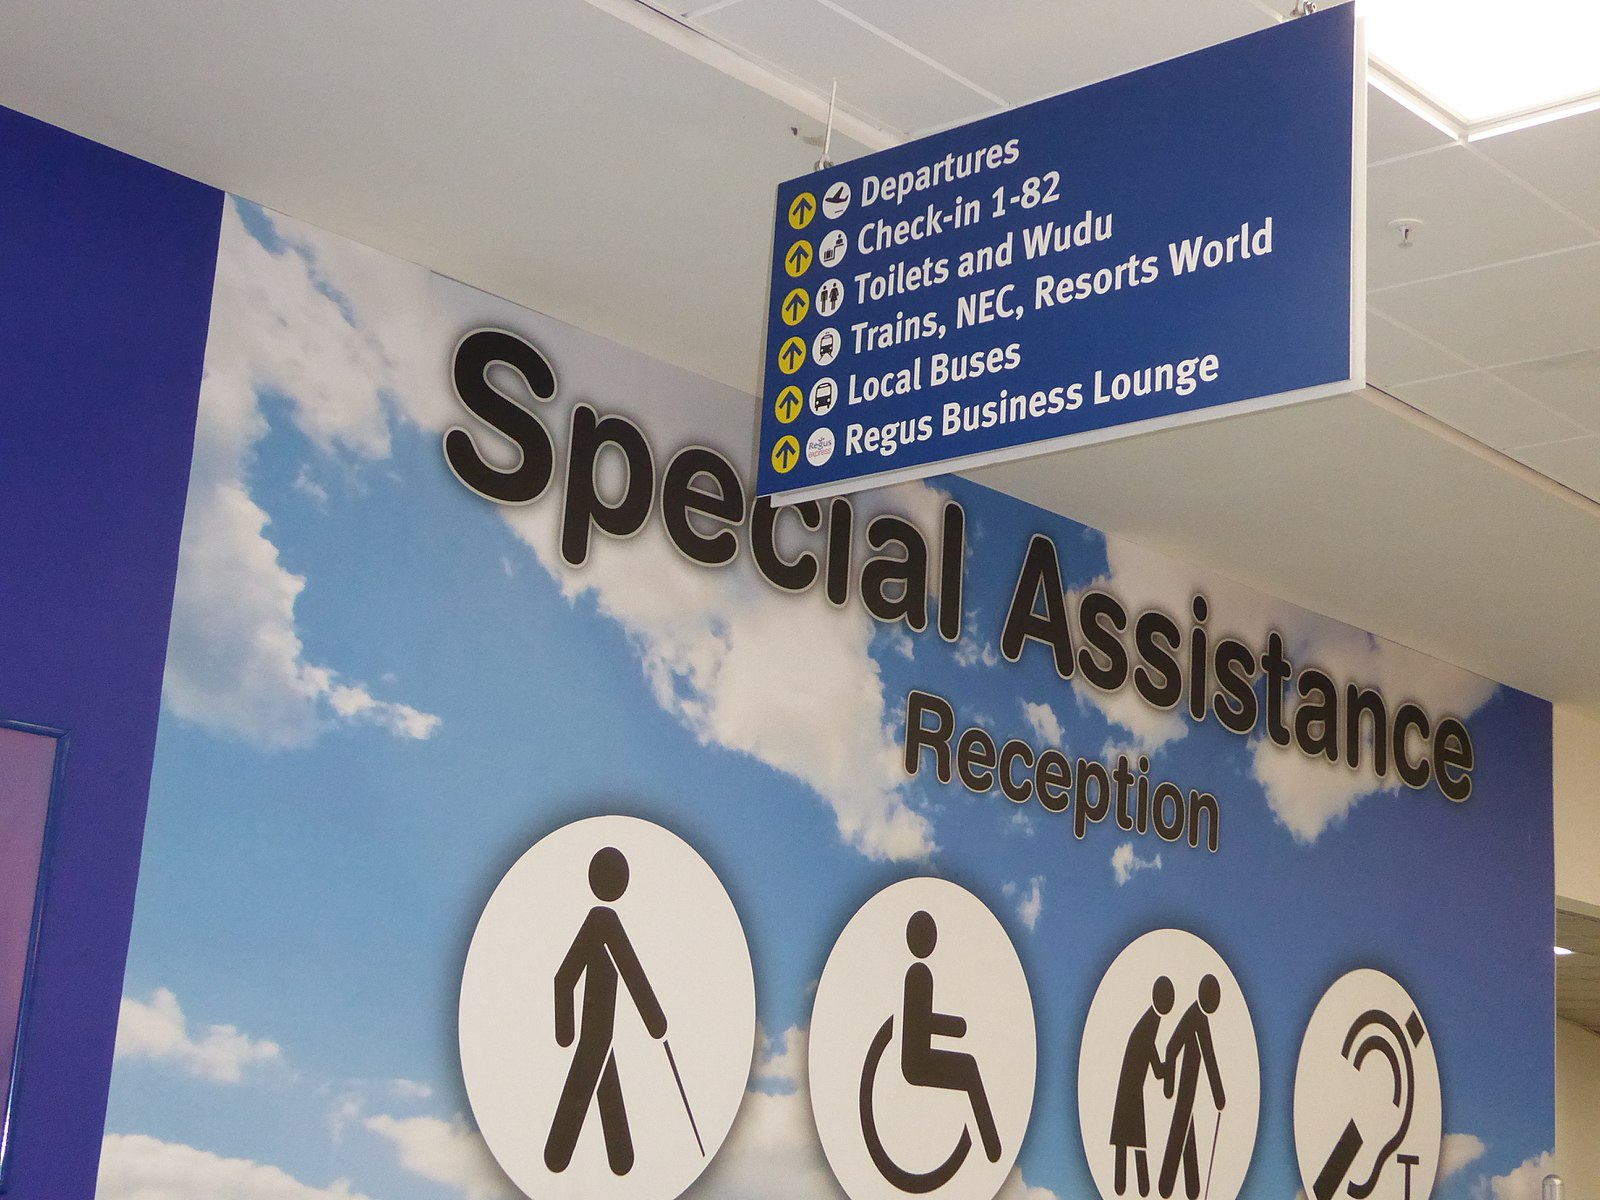 Airport Accessibility | Special Assistance | Book FHR Travel Blog